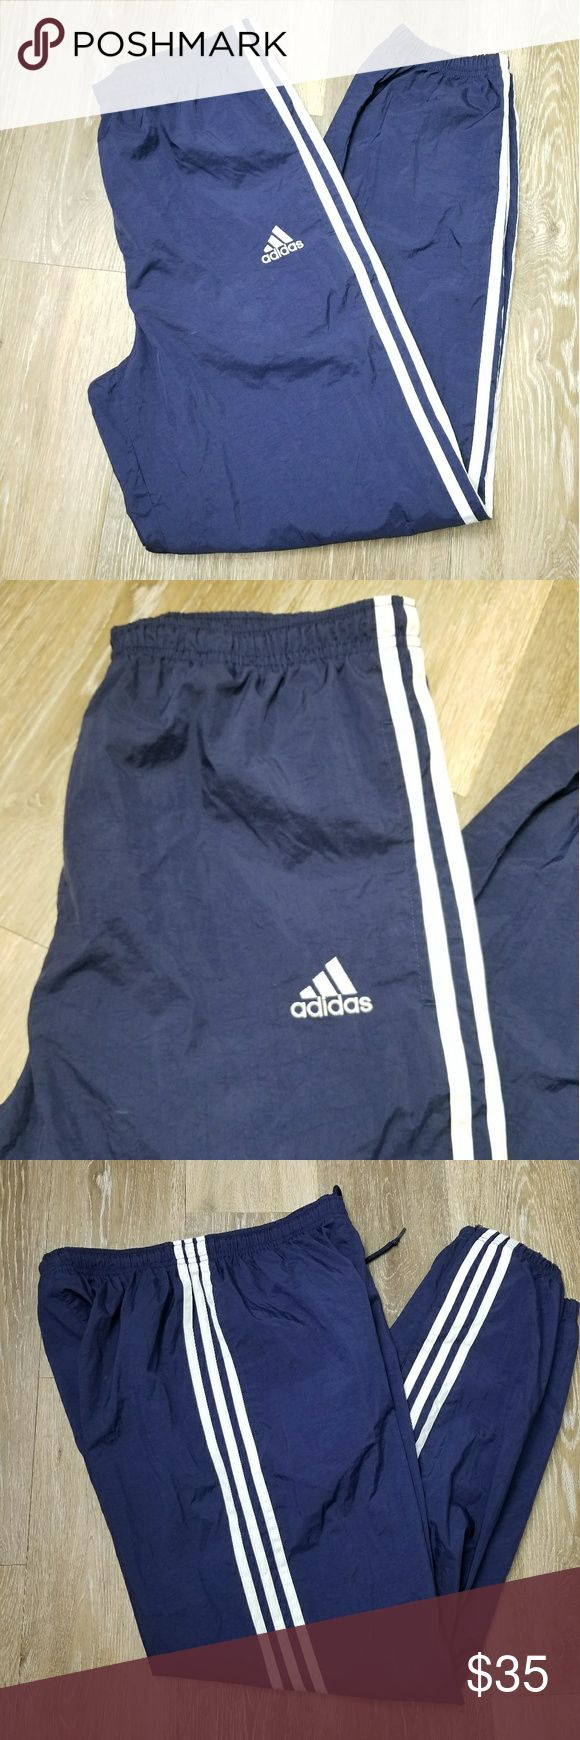 """Adidas Women's Windbreakers Joggers ADIDAS  WINDBREAKER PANTS   WOMENS  SIZE SMALL   NAVY BLUE WITH WHITE STRIPES   ZIPPER ON SIDES OF ANKLES   GENTLY USED   MEASUREMENTS:  LENGTH 39""""  WAIST 30""""  INSEAM 28"""" Adidas Pants Track Pants & Joggers"""